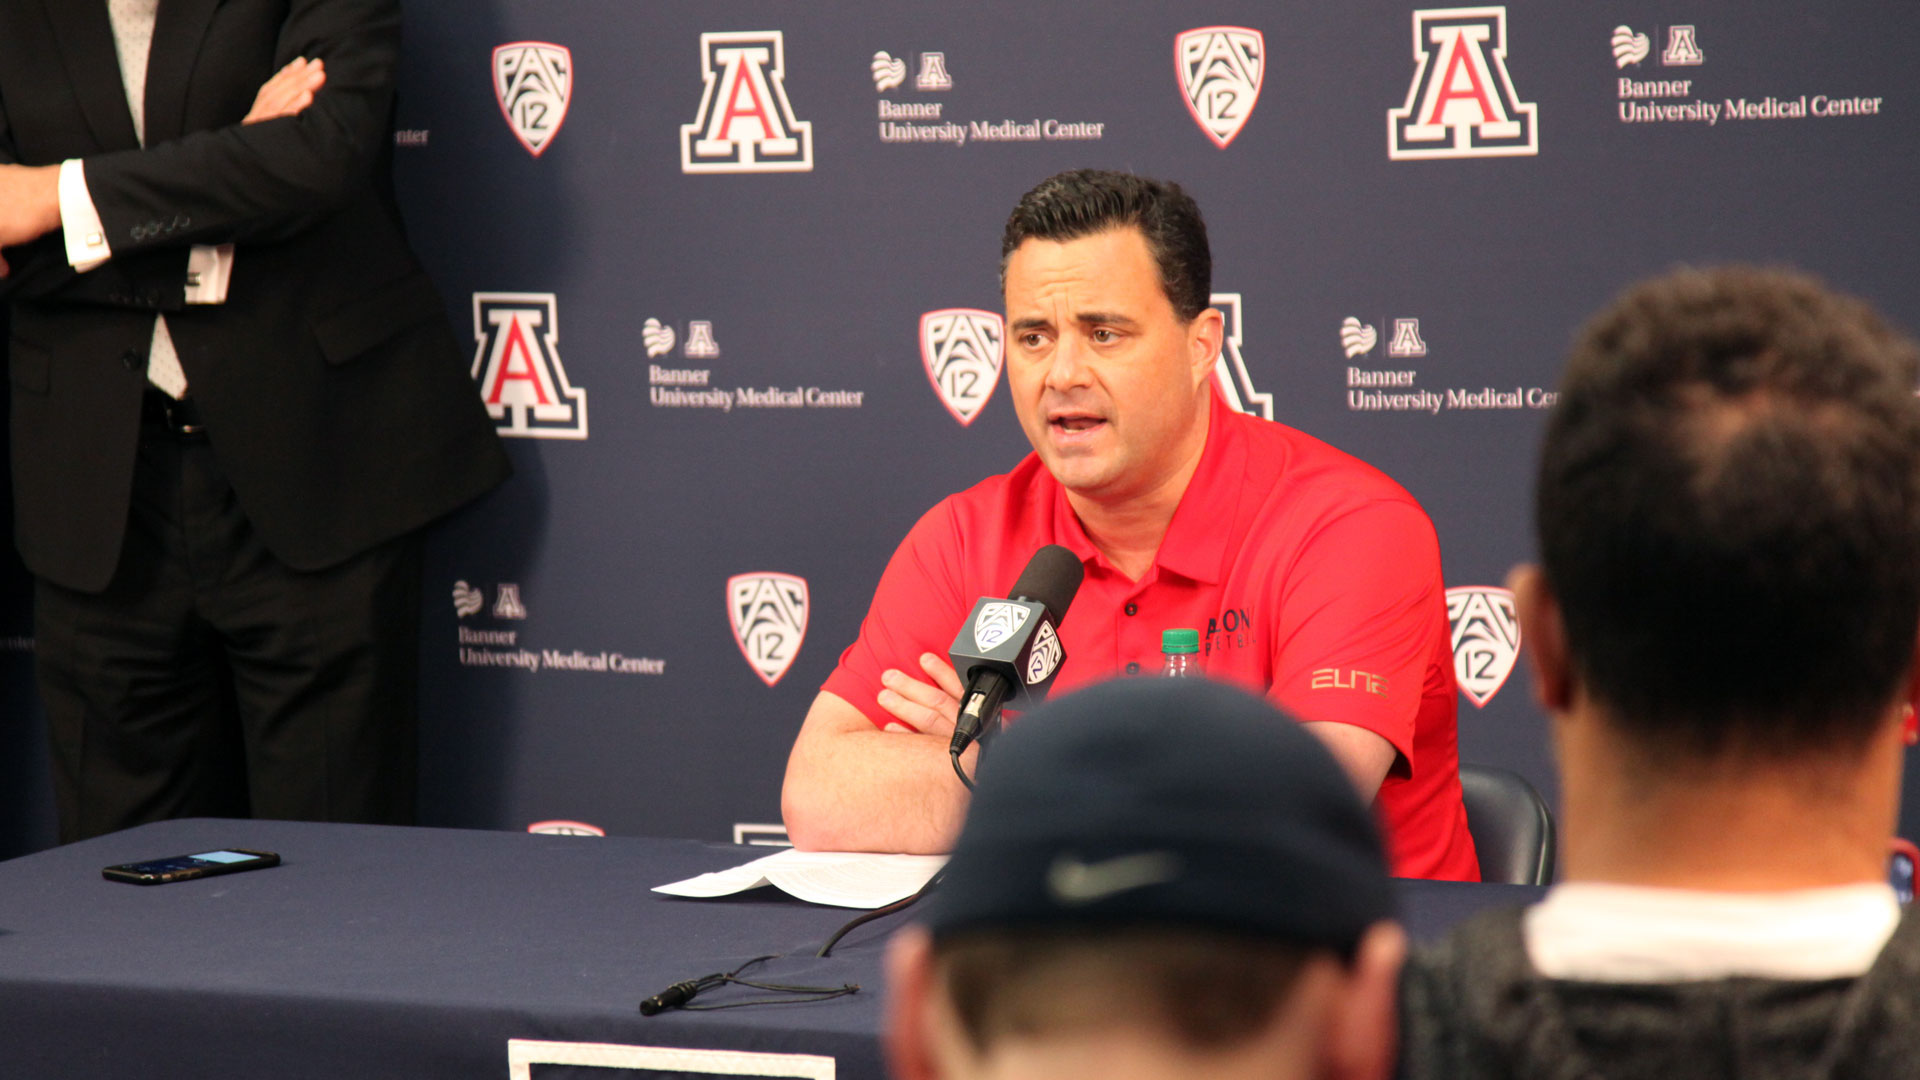 Sean Miller amended contract approved; would lose $1 million if criminally charged